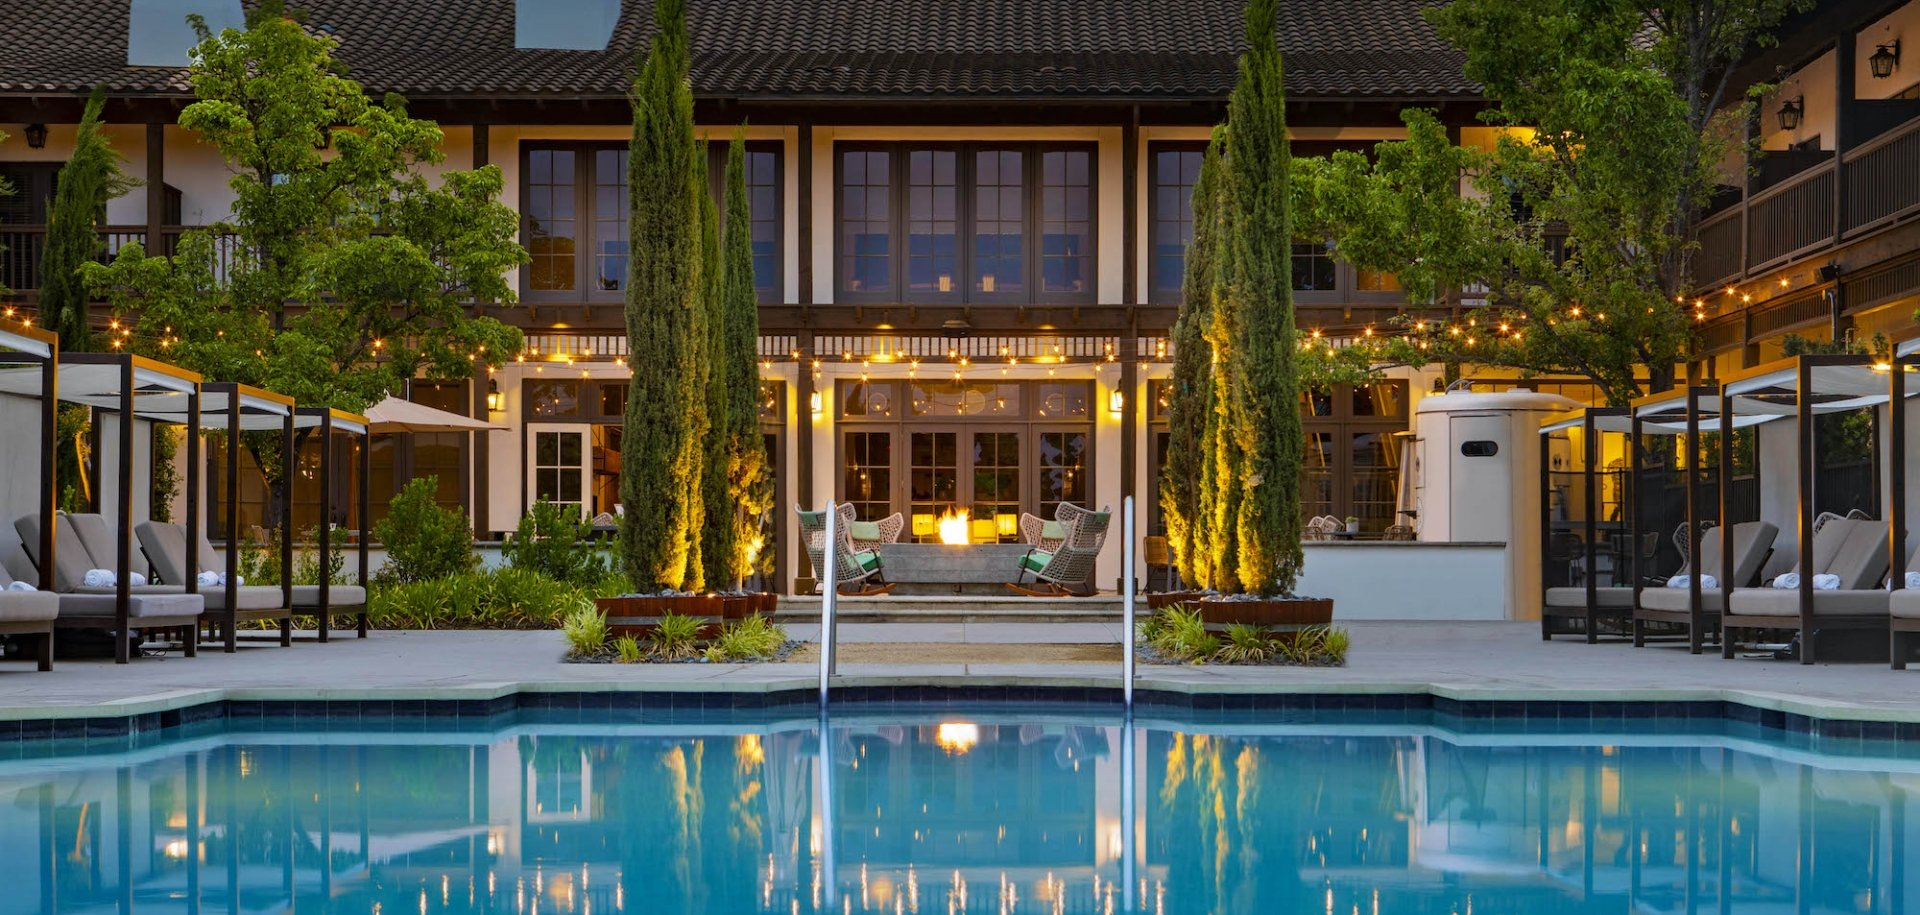 The large outdoor hotel pool at The Lodge at Sonoma